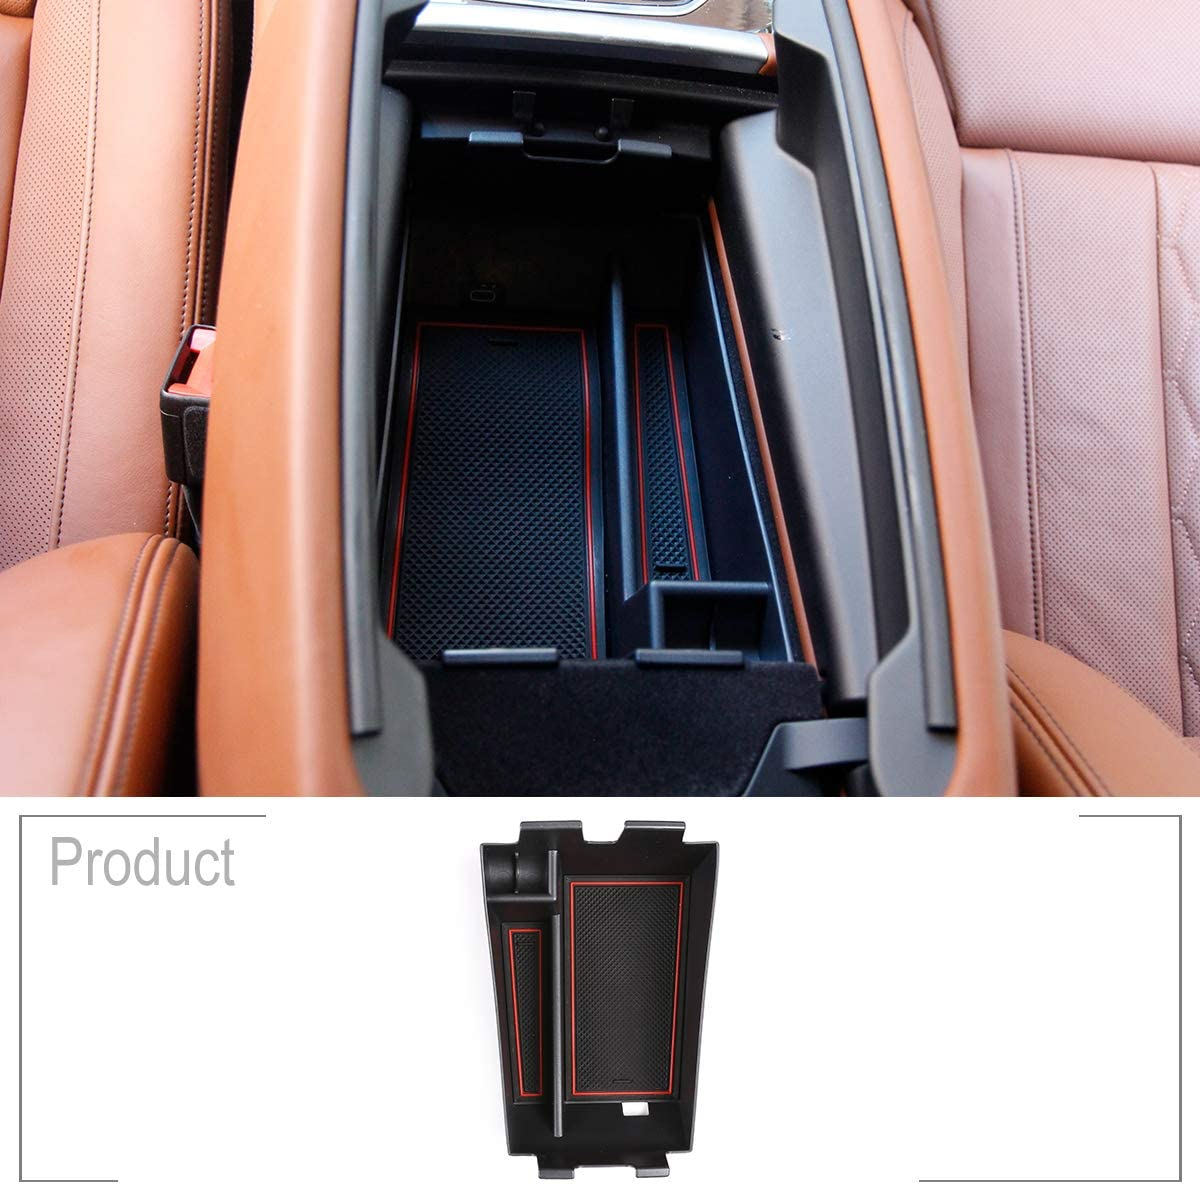 TongSheng for BMW X5 G05 X6 X7 GO7 2019 Armrest Center Console Organizer Tray Accessories with Coin and Sunglasses Holder,Secondary Insert Storage Box